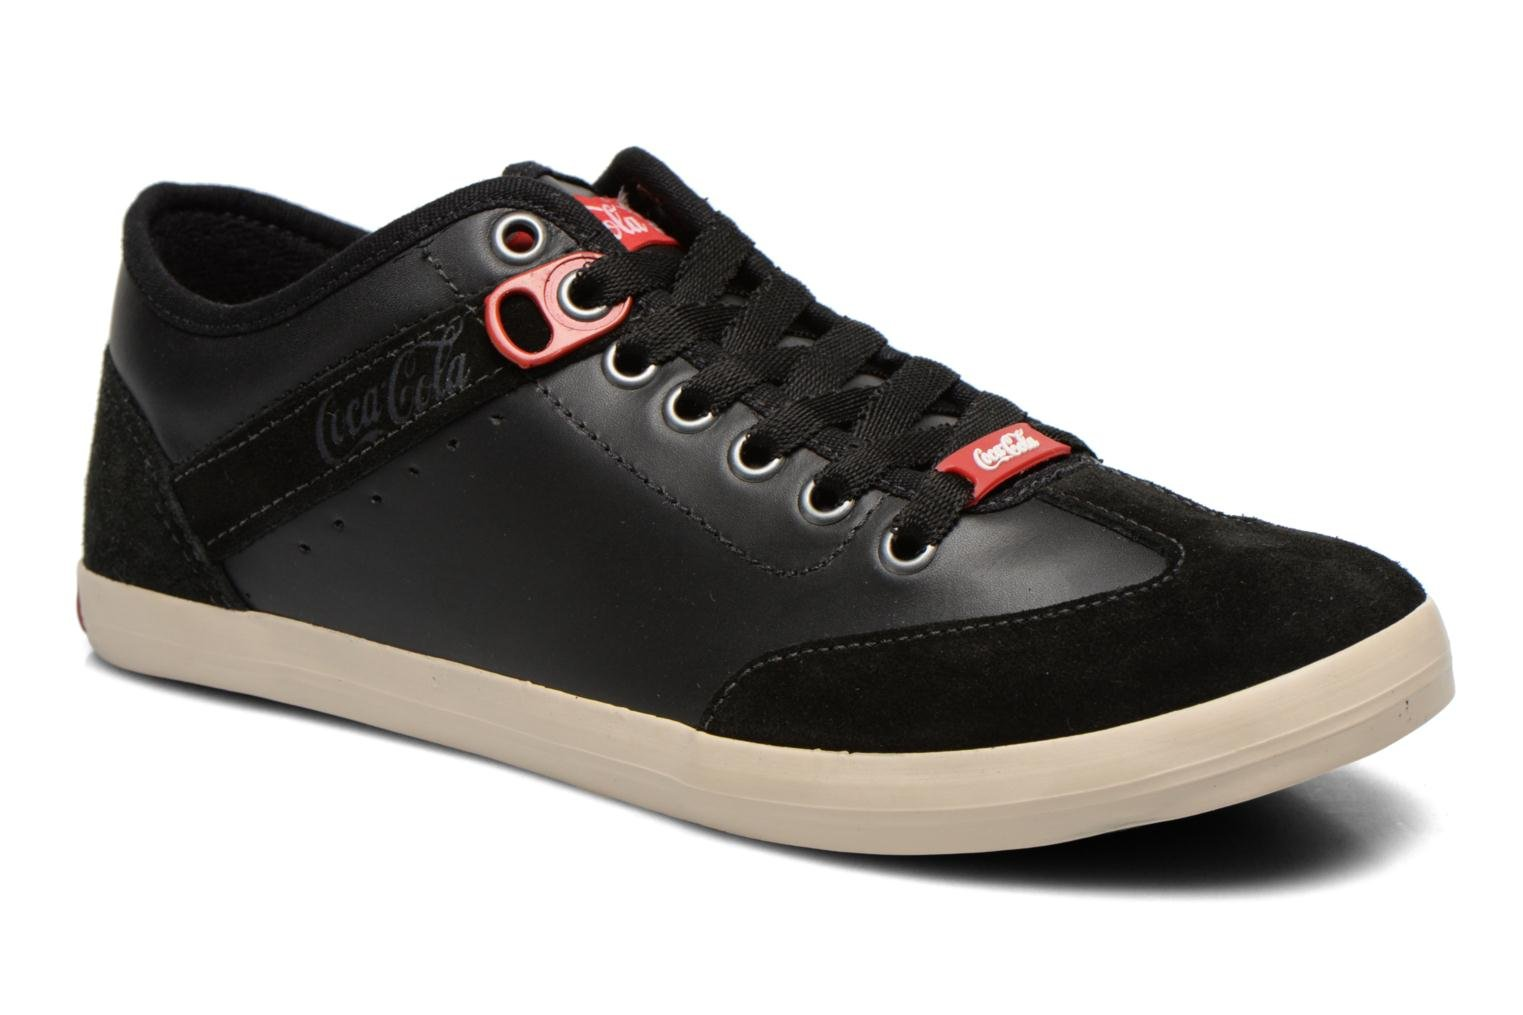 Montreal Low by Coca-cola shoes